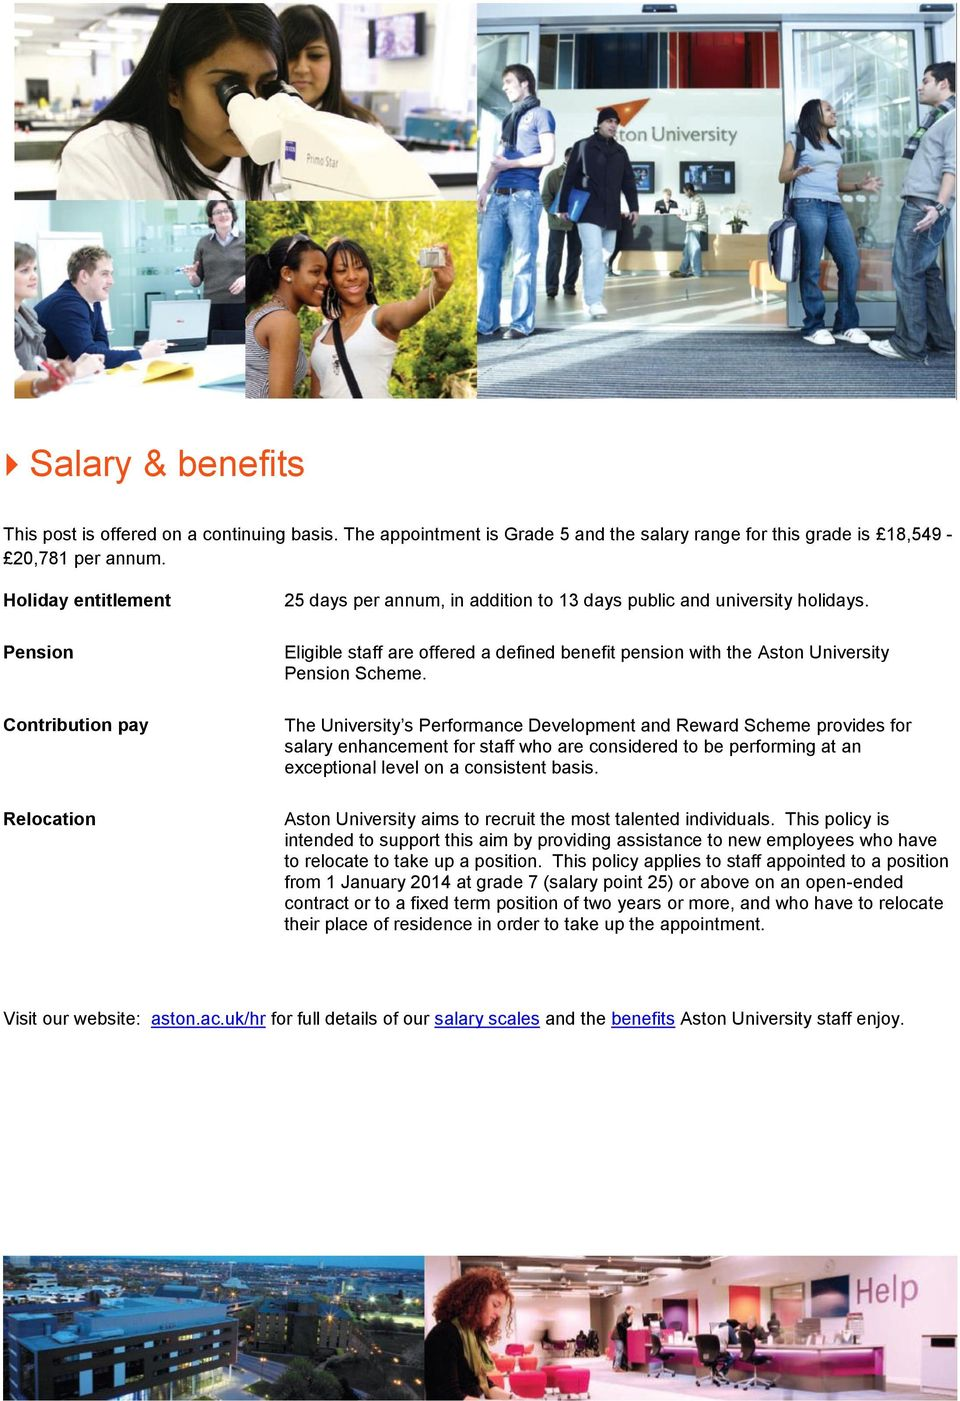 Eligible staff are offered a defined benefit pension with the Aston University Pension Scheme.